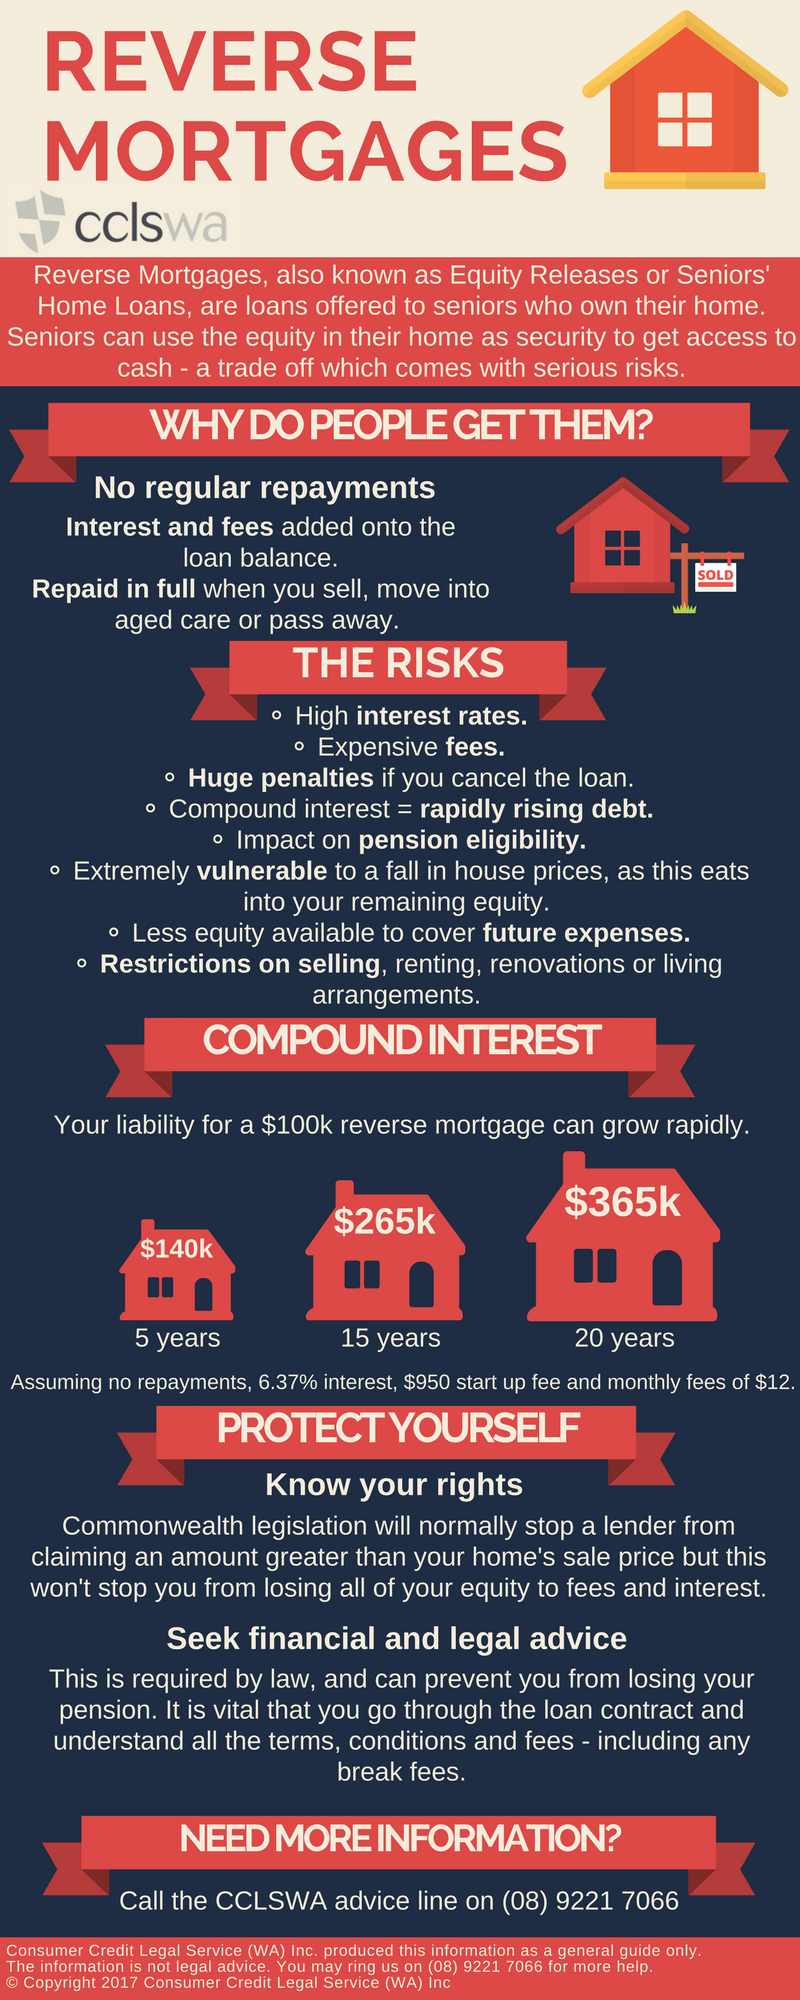 Reverse Mortgages Infographic